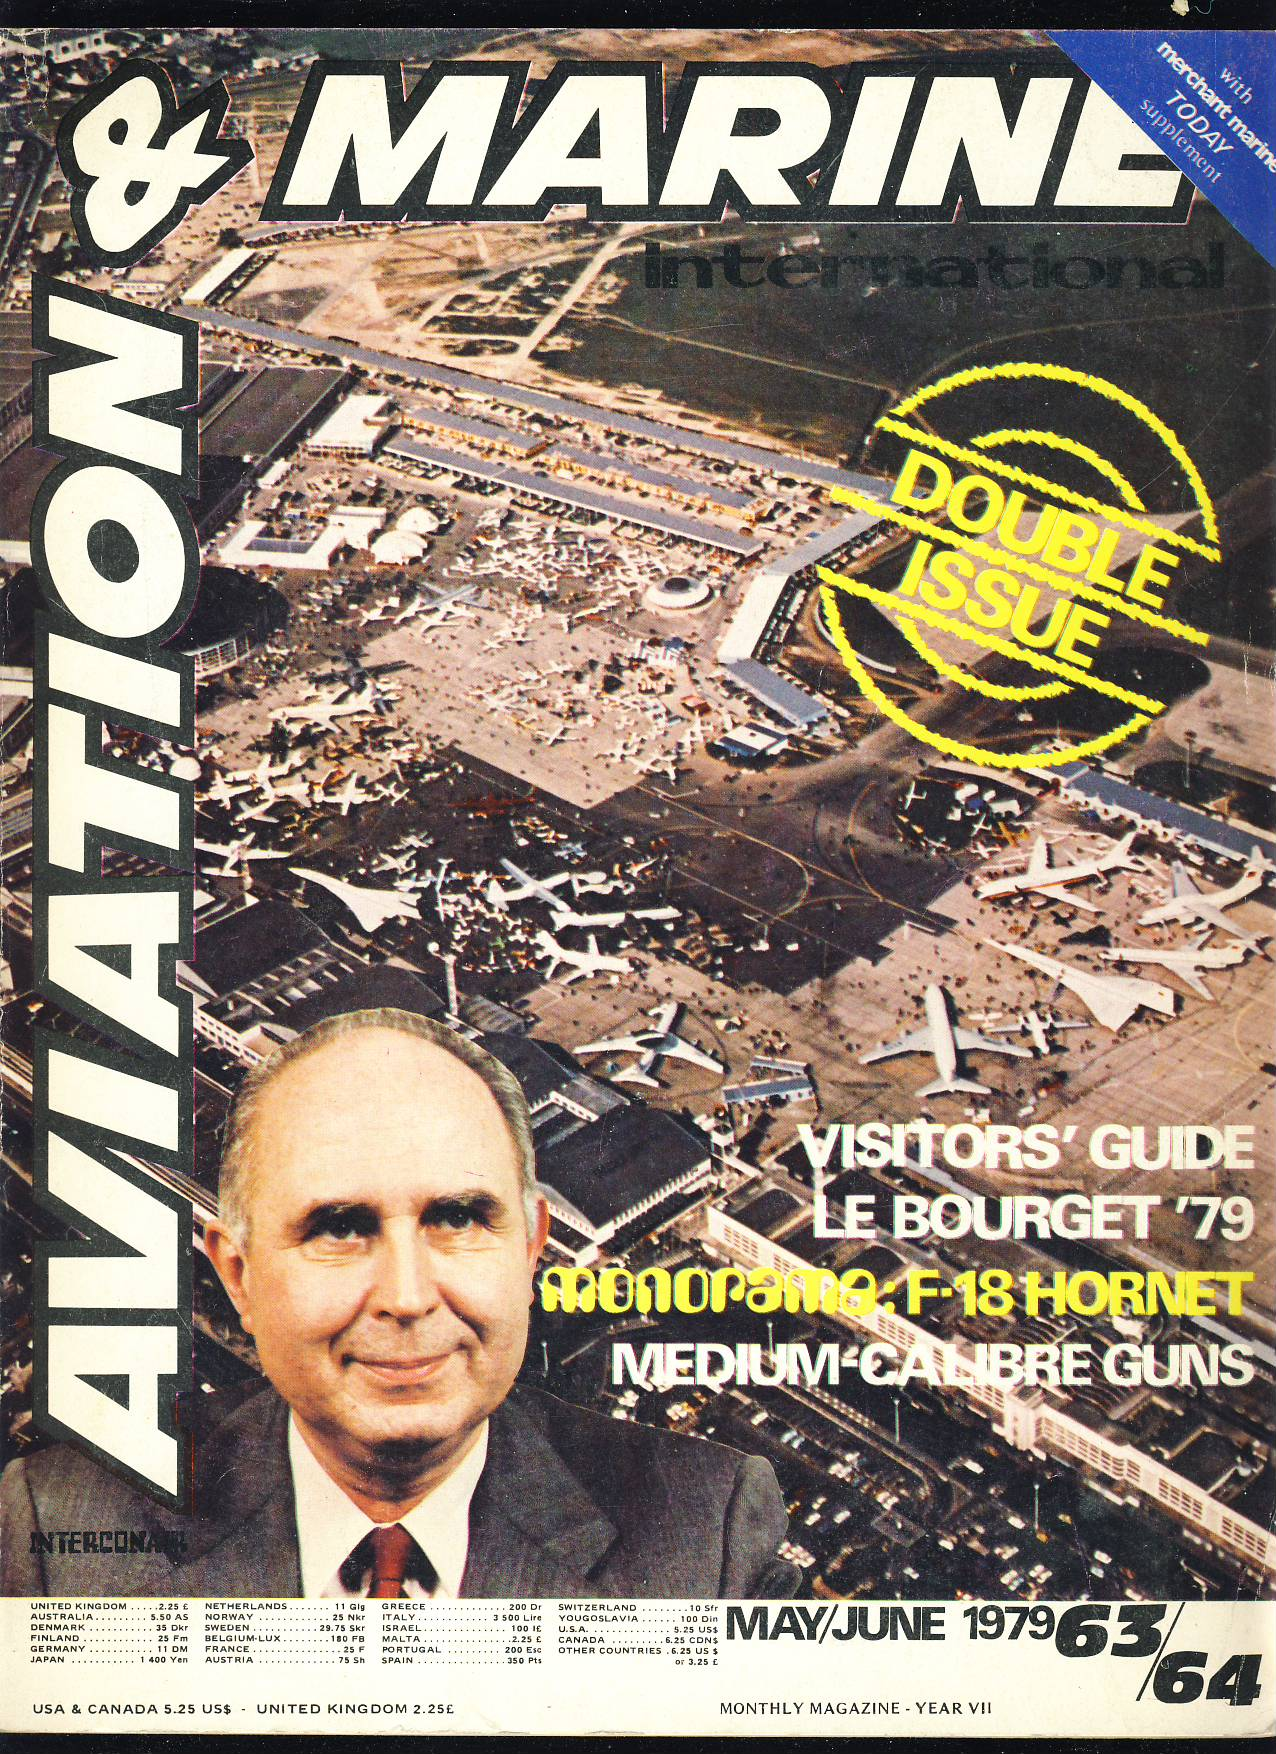 Front cover shows Mr Rene Revaud President of the Groupement des Industries Francaises Aeronautiques et Spatiales SNECMA Pre-owned vintage mgazine in good read condition. Please see large photo for more details.